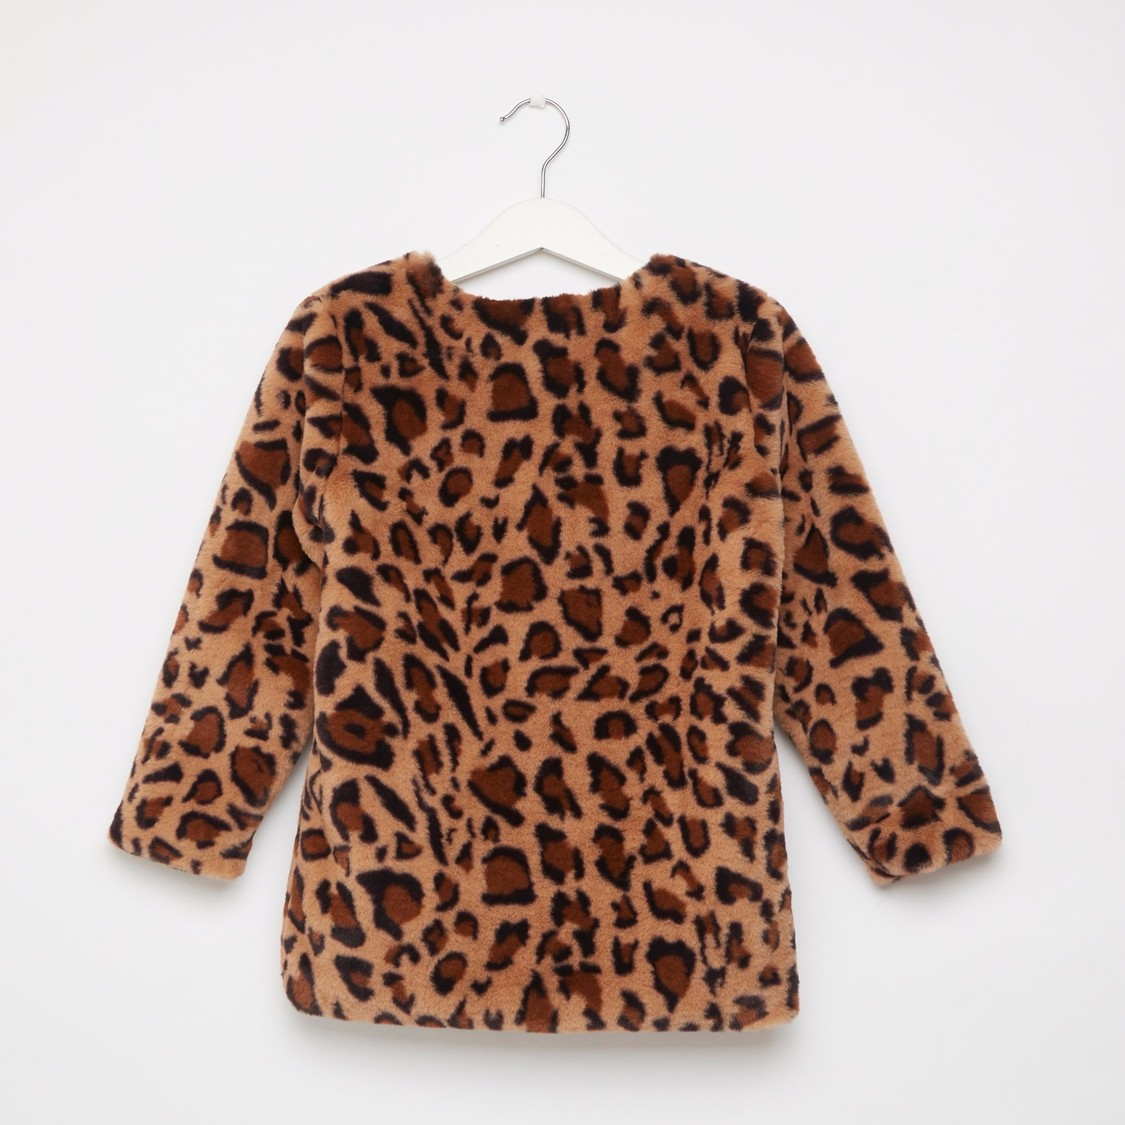 Animal Print Fur Coat with Bow Accent and Long Sleeves